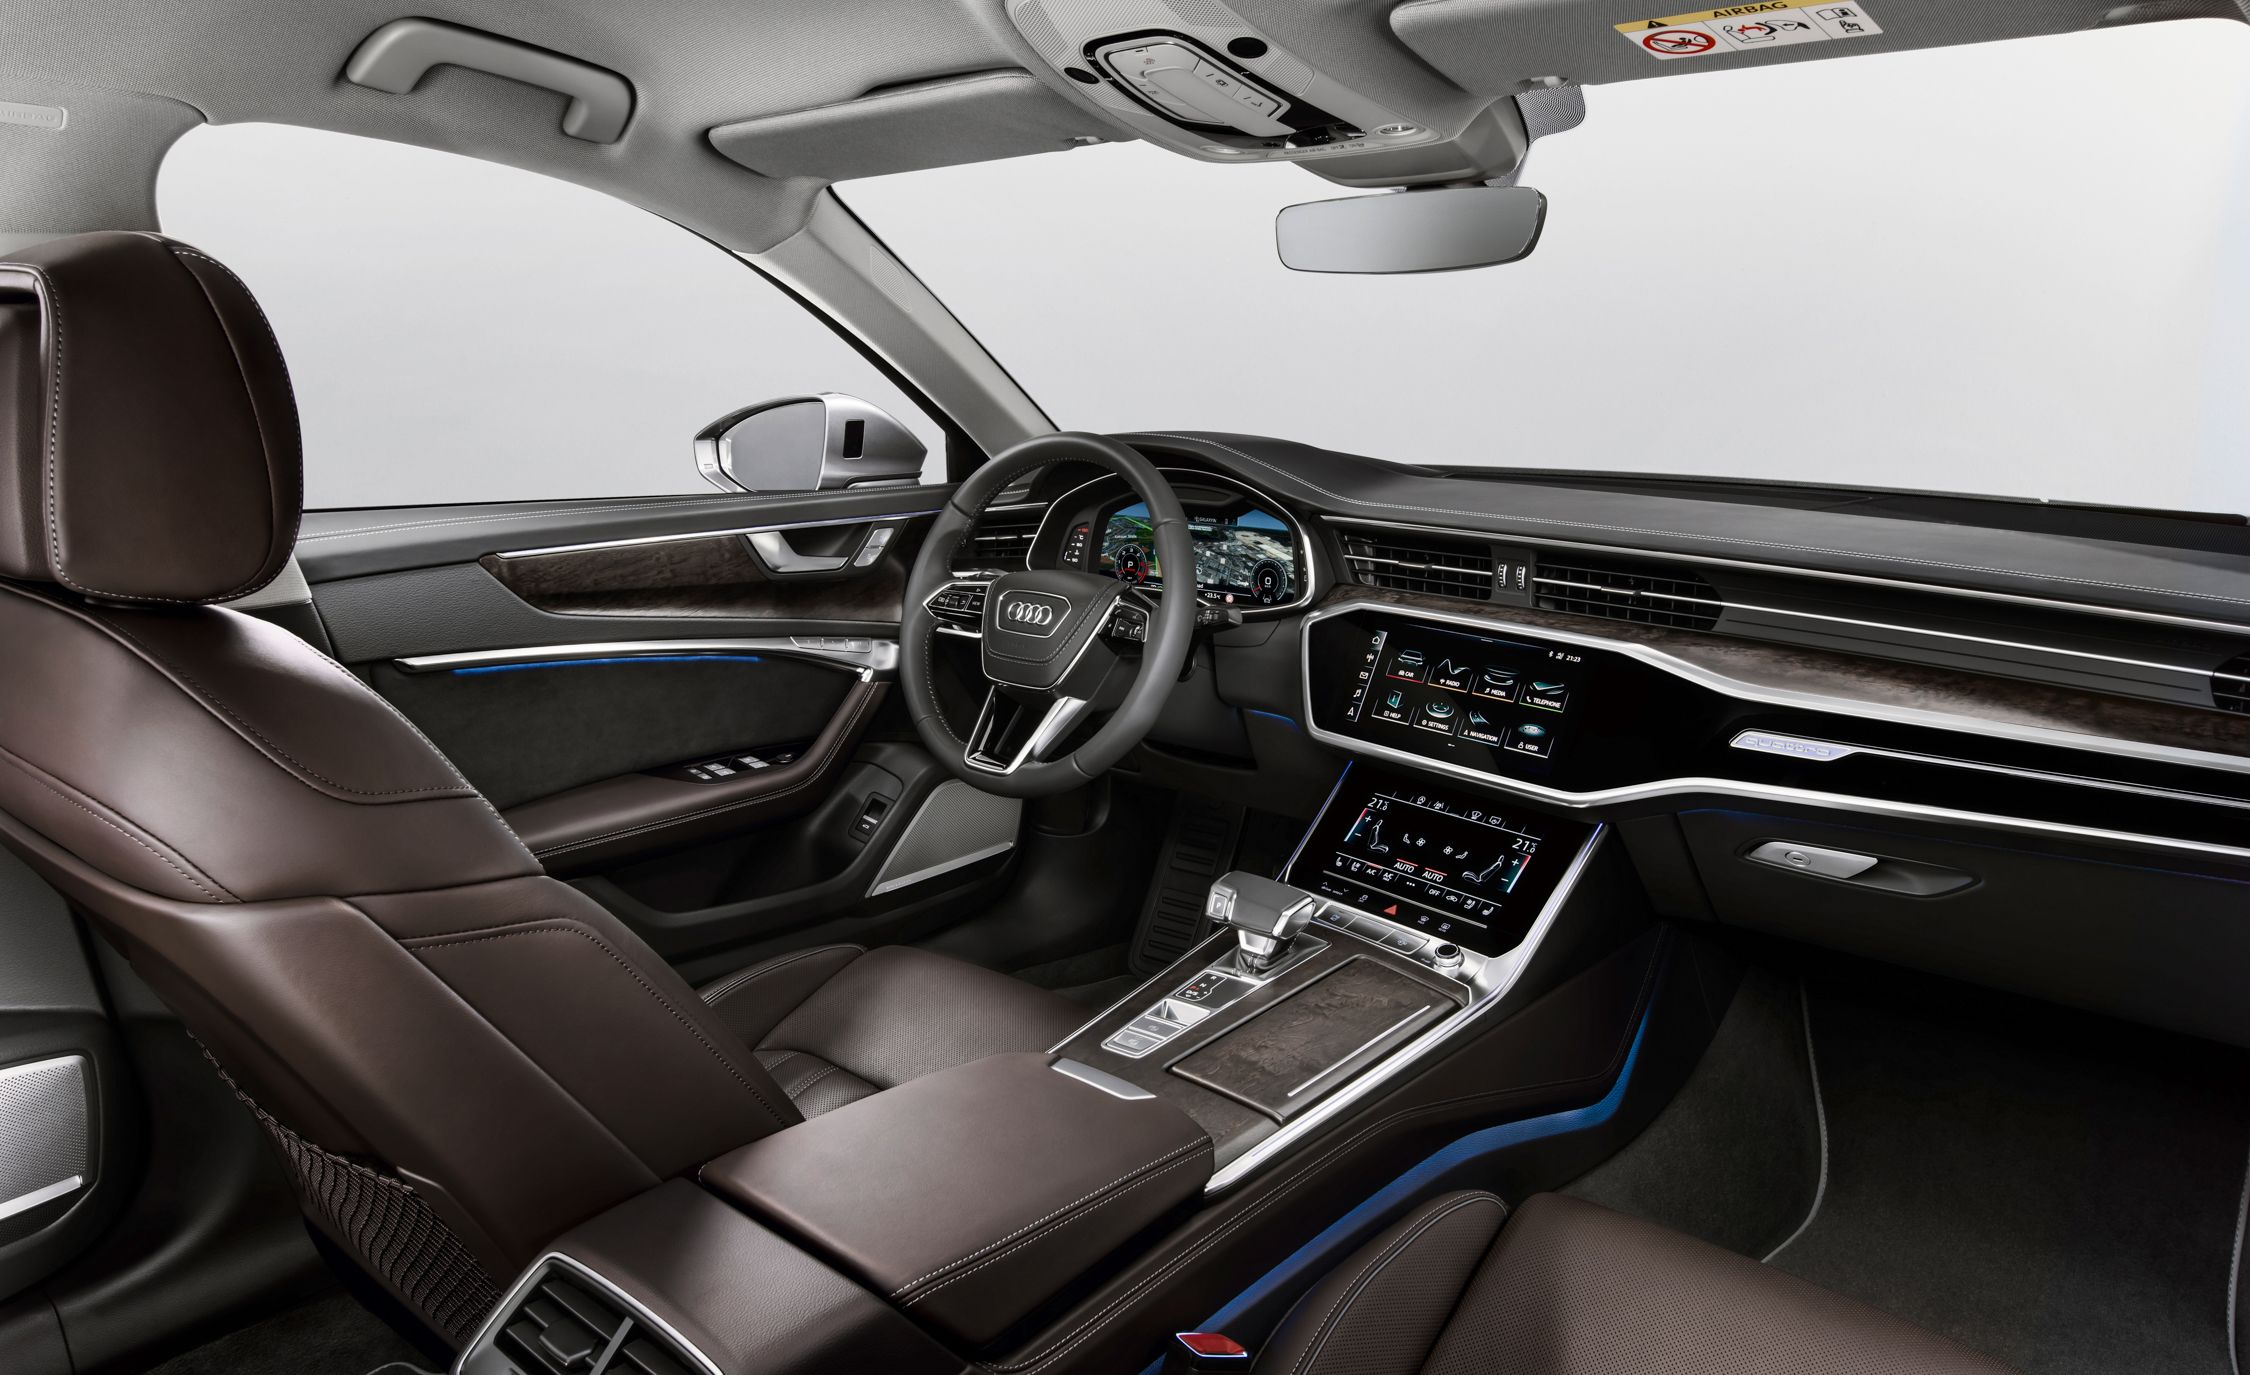 Audi A First Drive Redesigned From The Inside Out Review - Audi a6 redesign